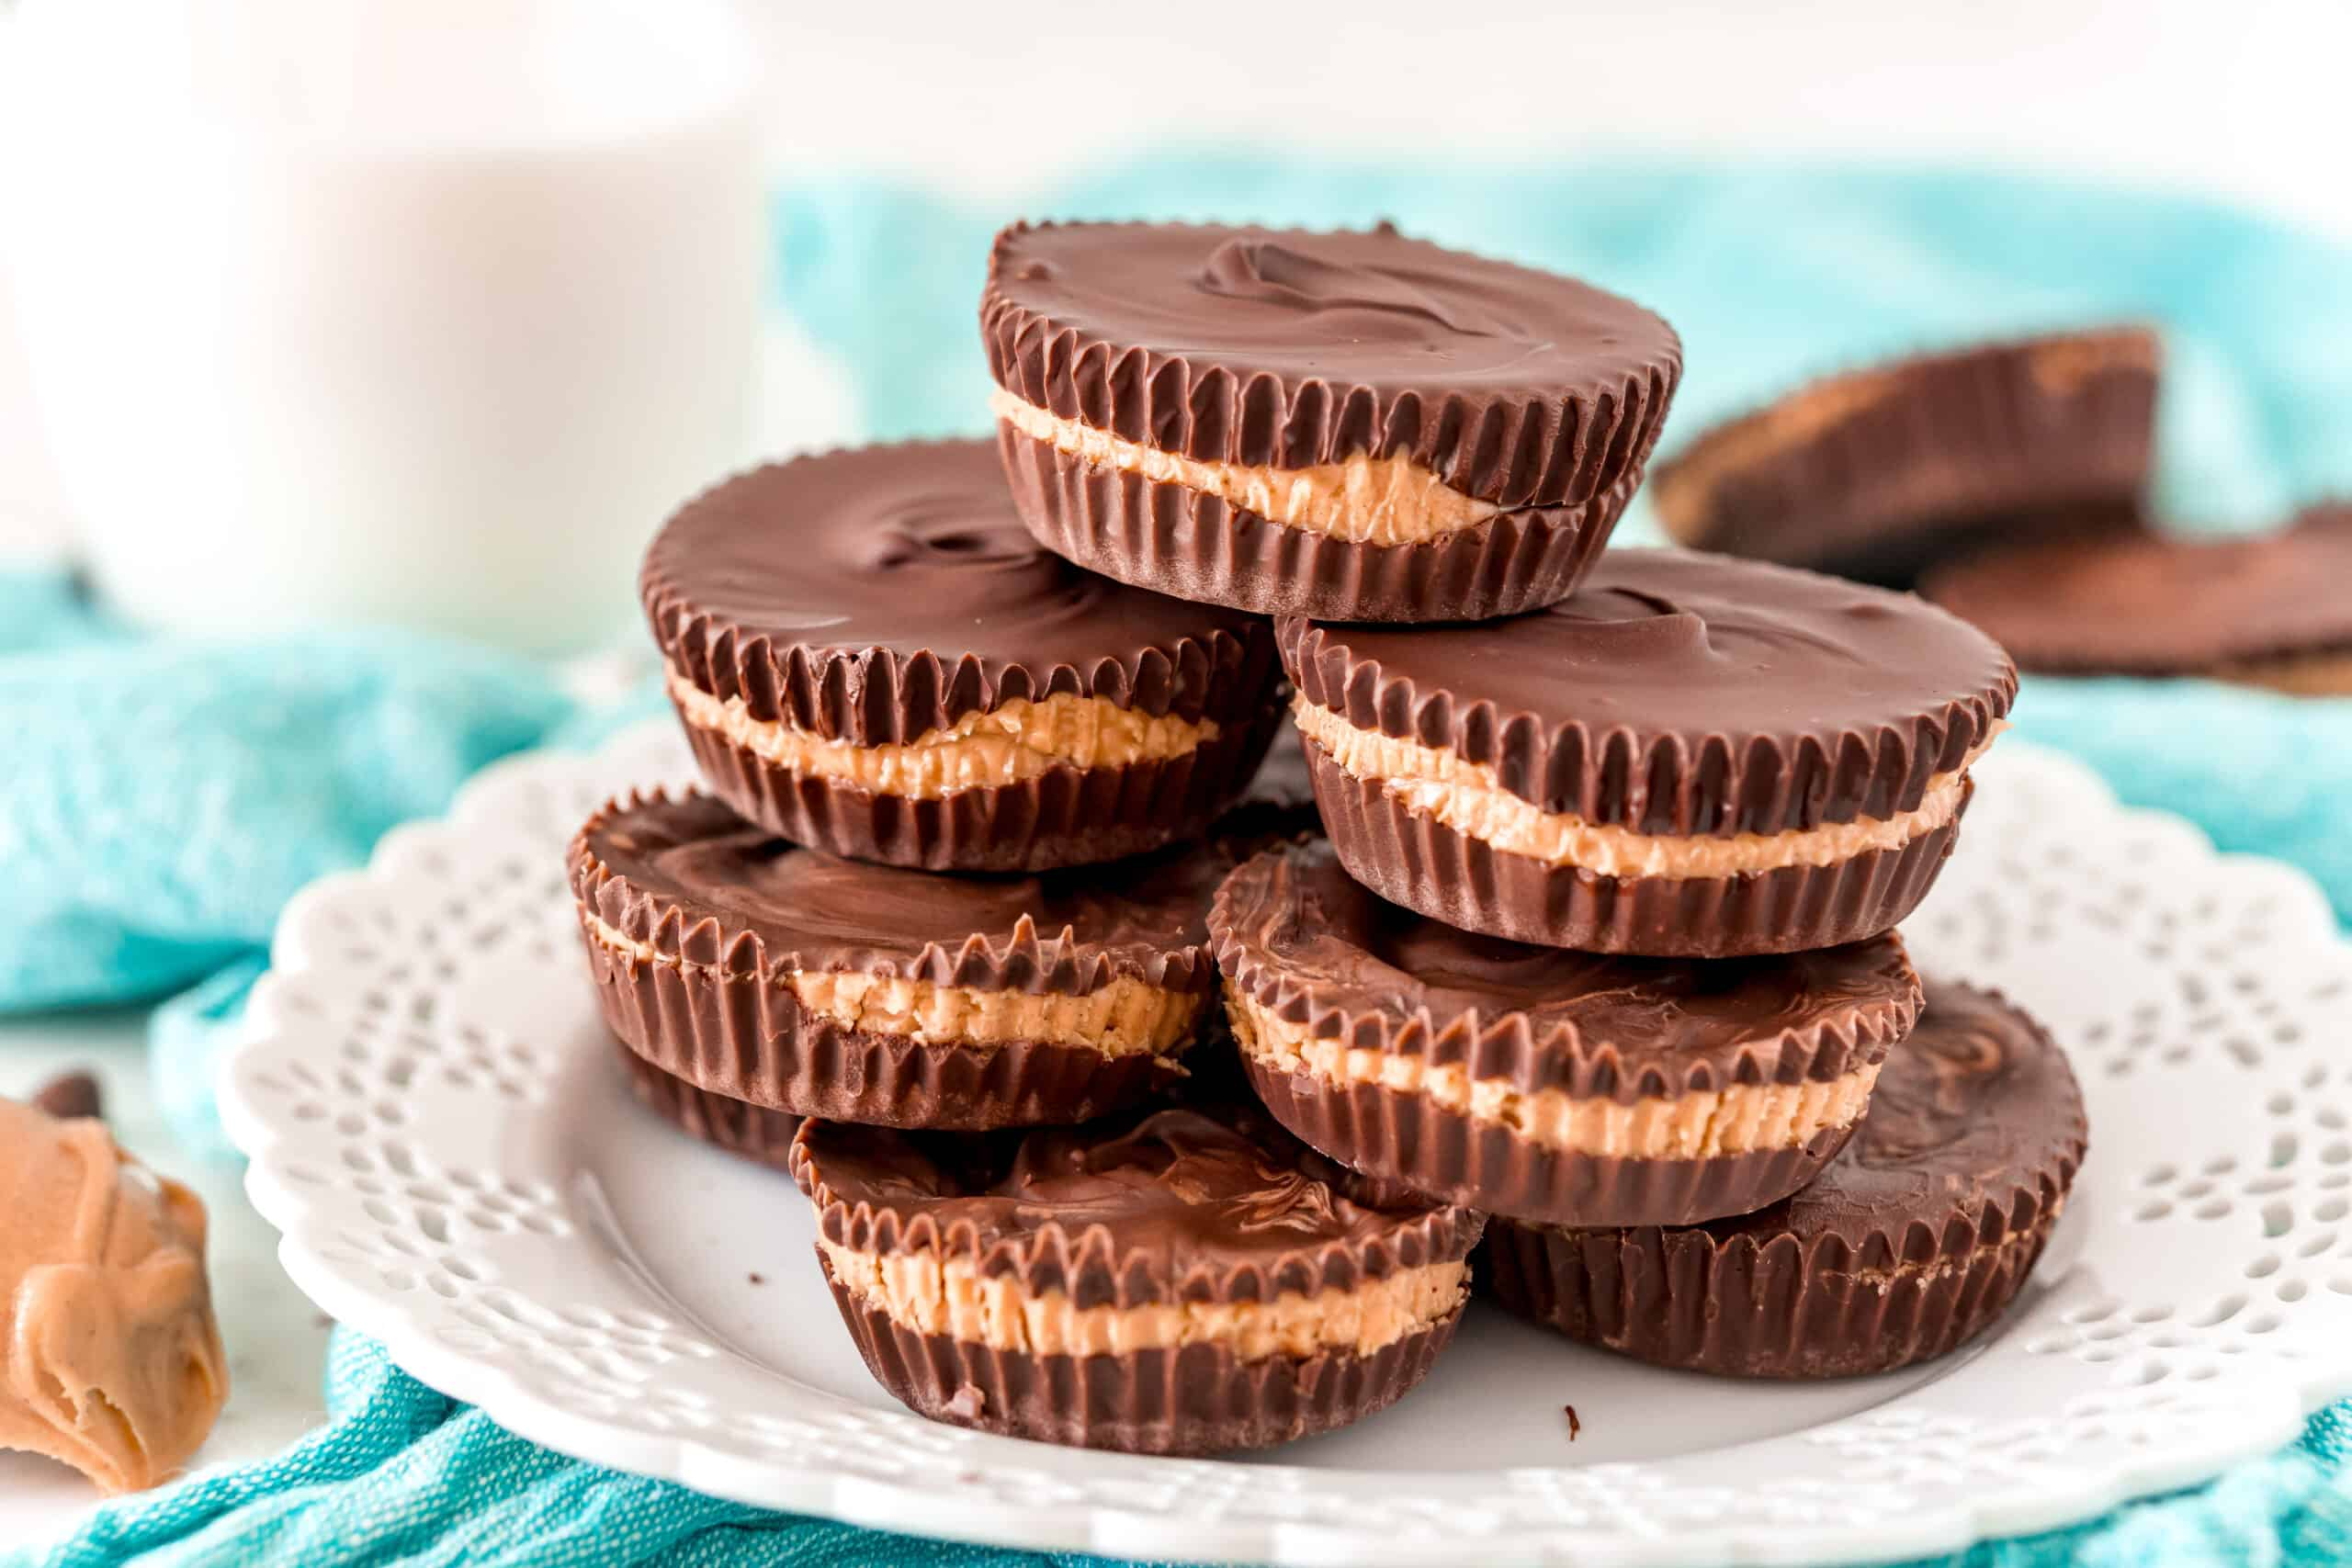 Stack of homemade peanut butter cups on a white plate.